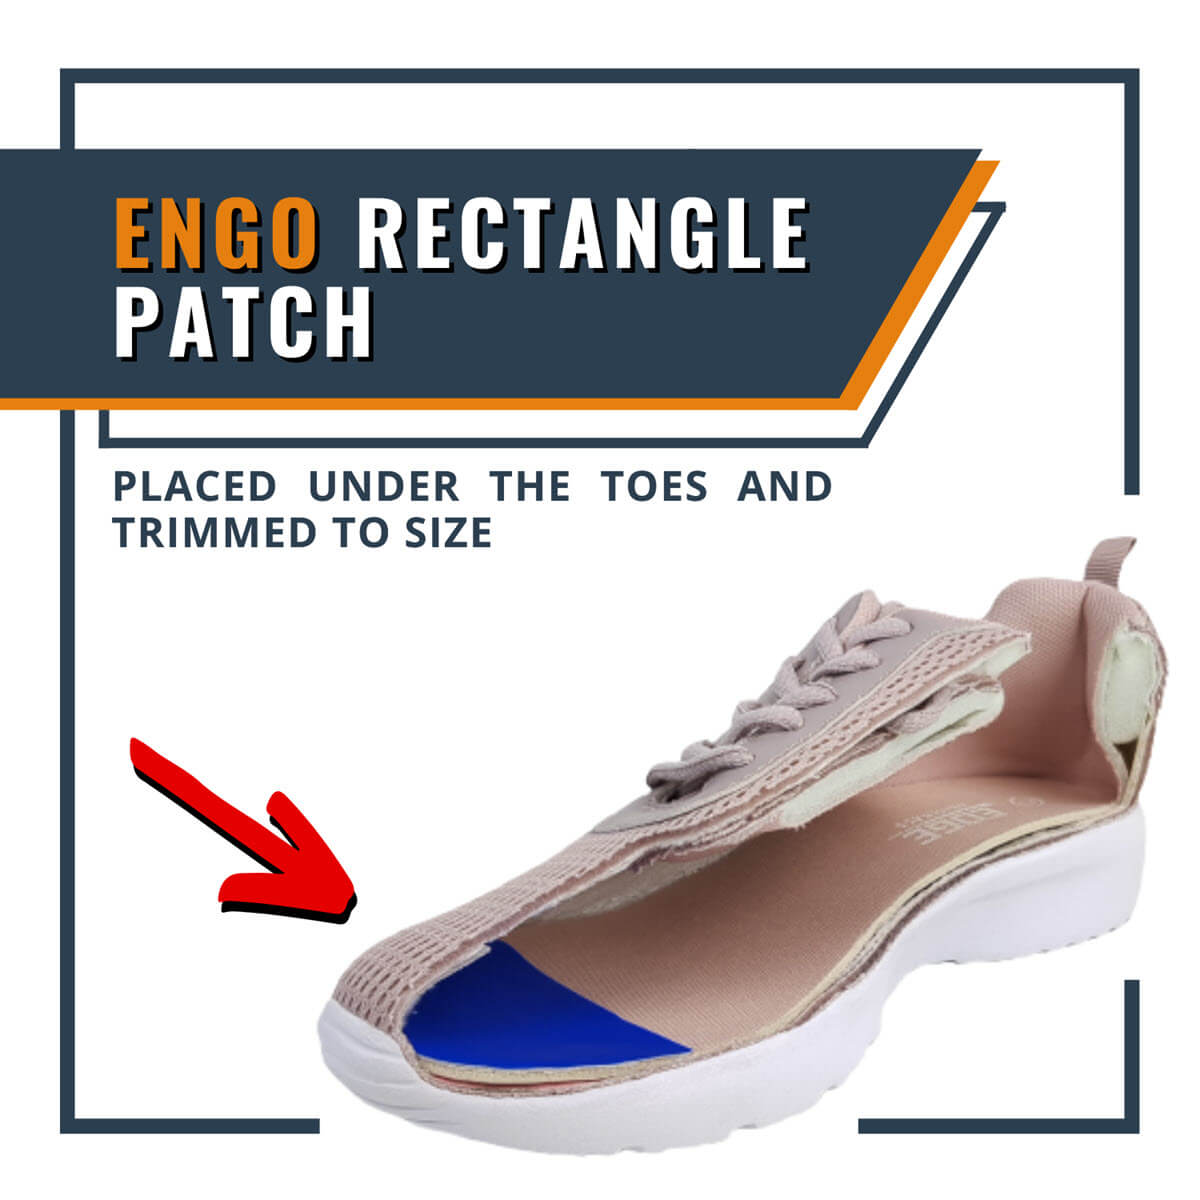 ENGO Blister Patches Rectangle Pack rectangle patch applied under the toes and trimmed to size oblique